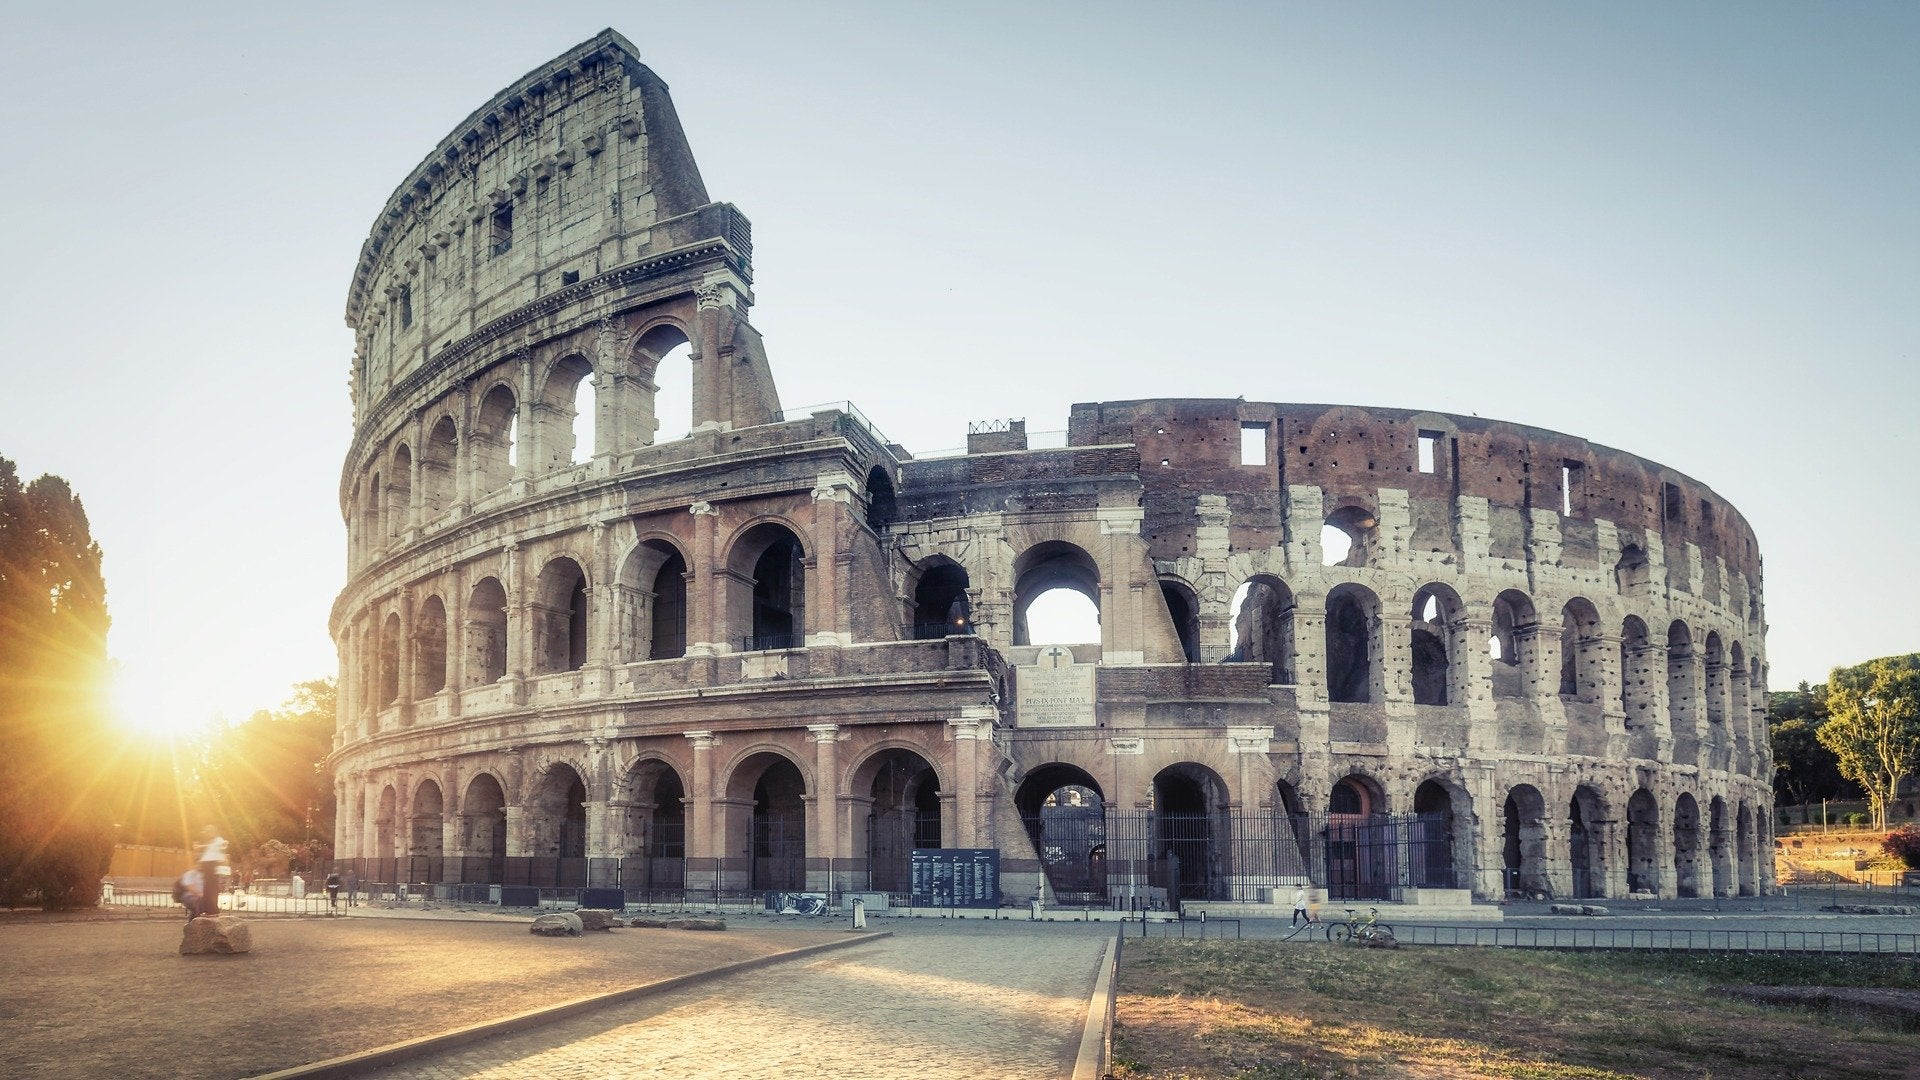 Unearthed: Rome's Greatest Mysteries